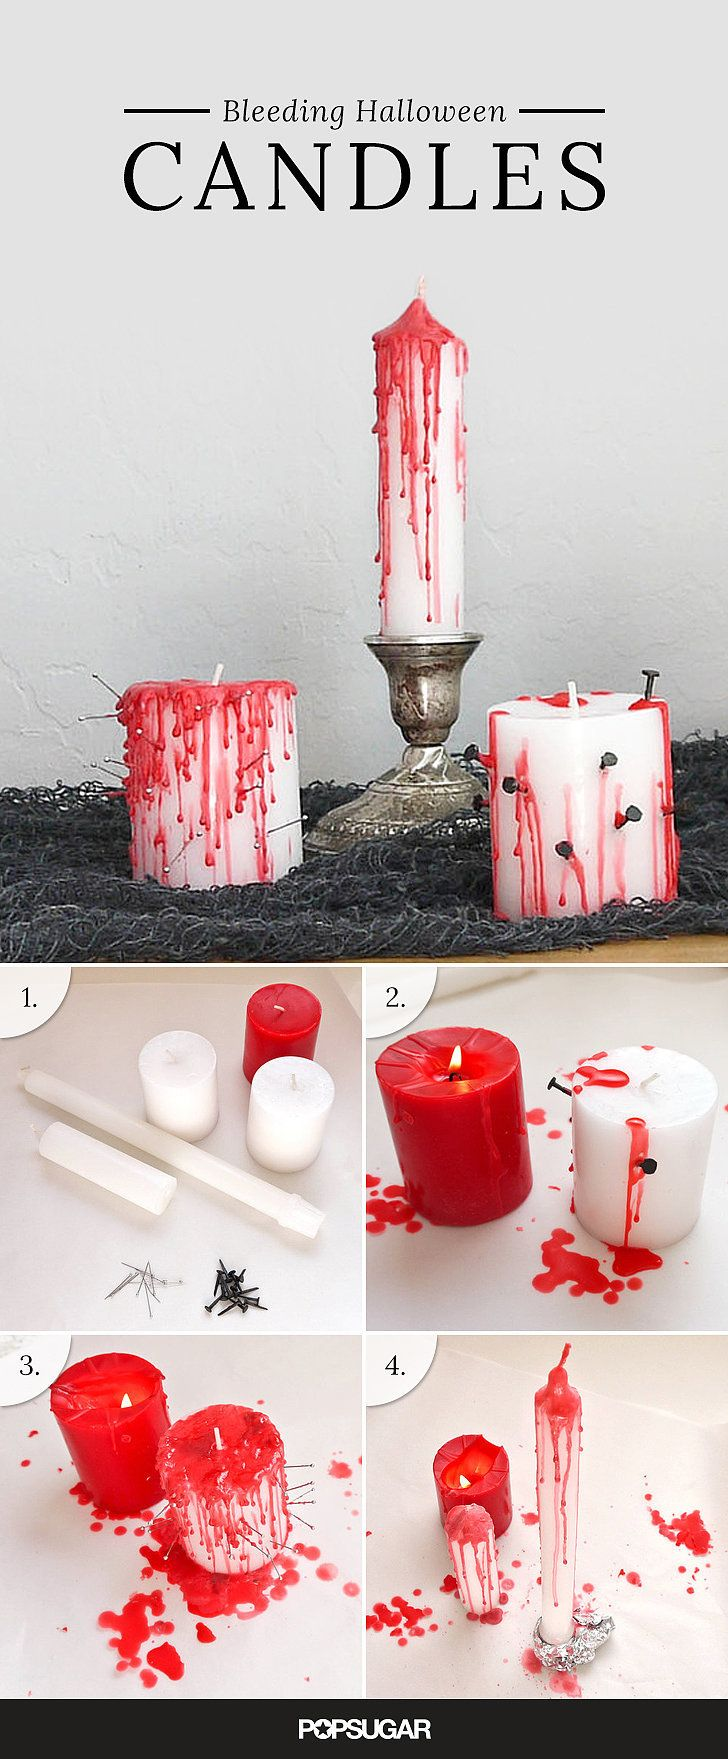 Transform dollar store candles into bleeding votives that really set the tone for an eerie evening of Halloween fun.